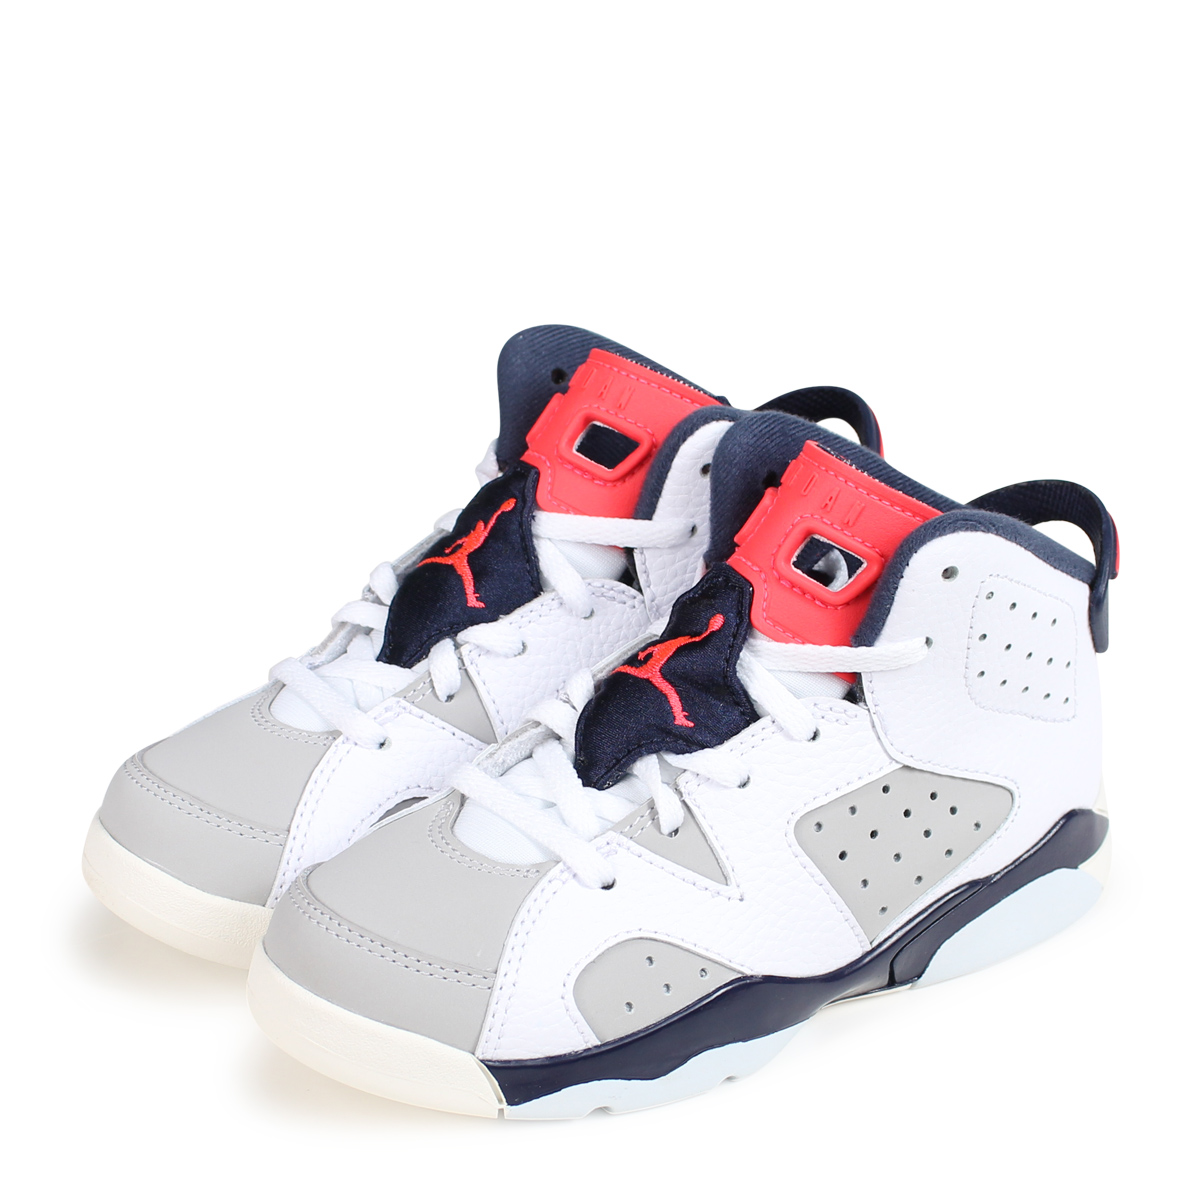 e6e2a89dae27 NIKE AIR JORDAN 6 RETRO PS TINKER Nike Air Jordan 6 nostalgic kids sneakers  384